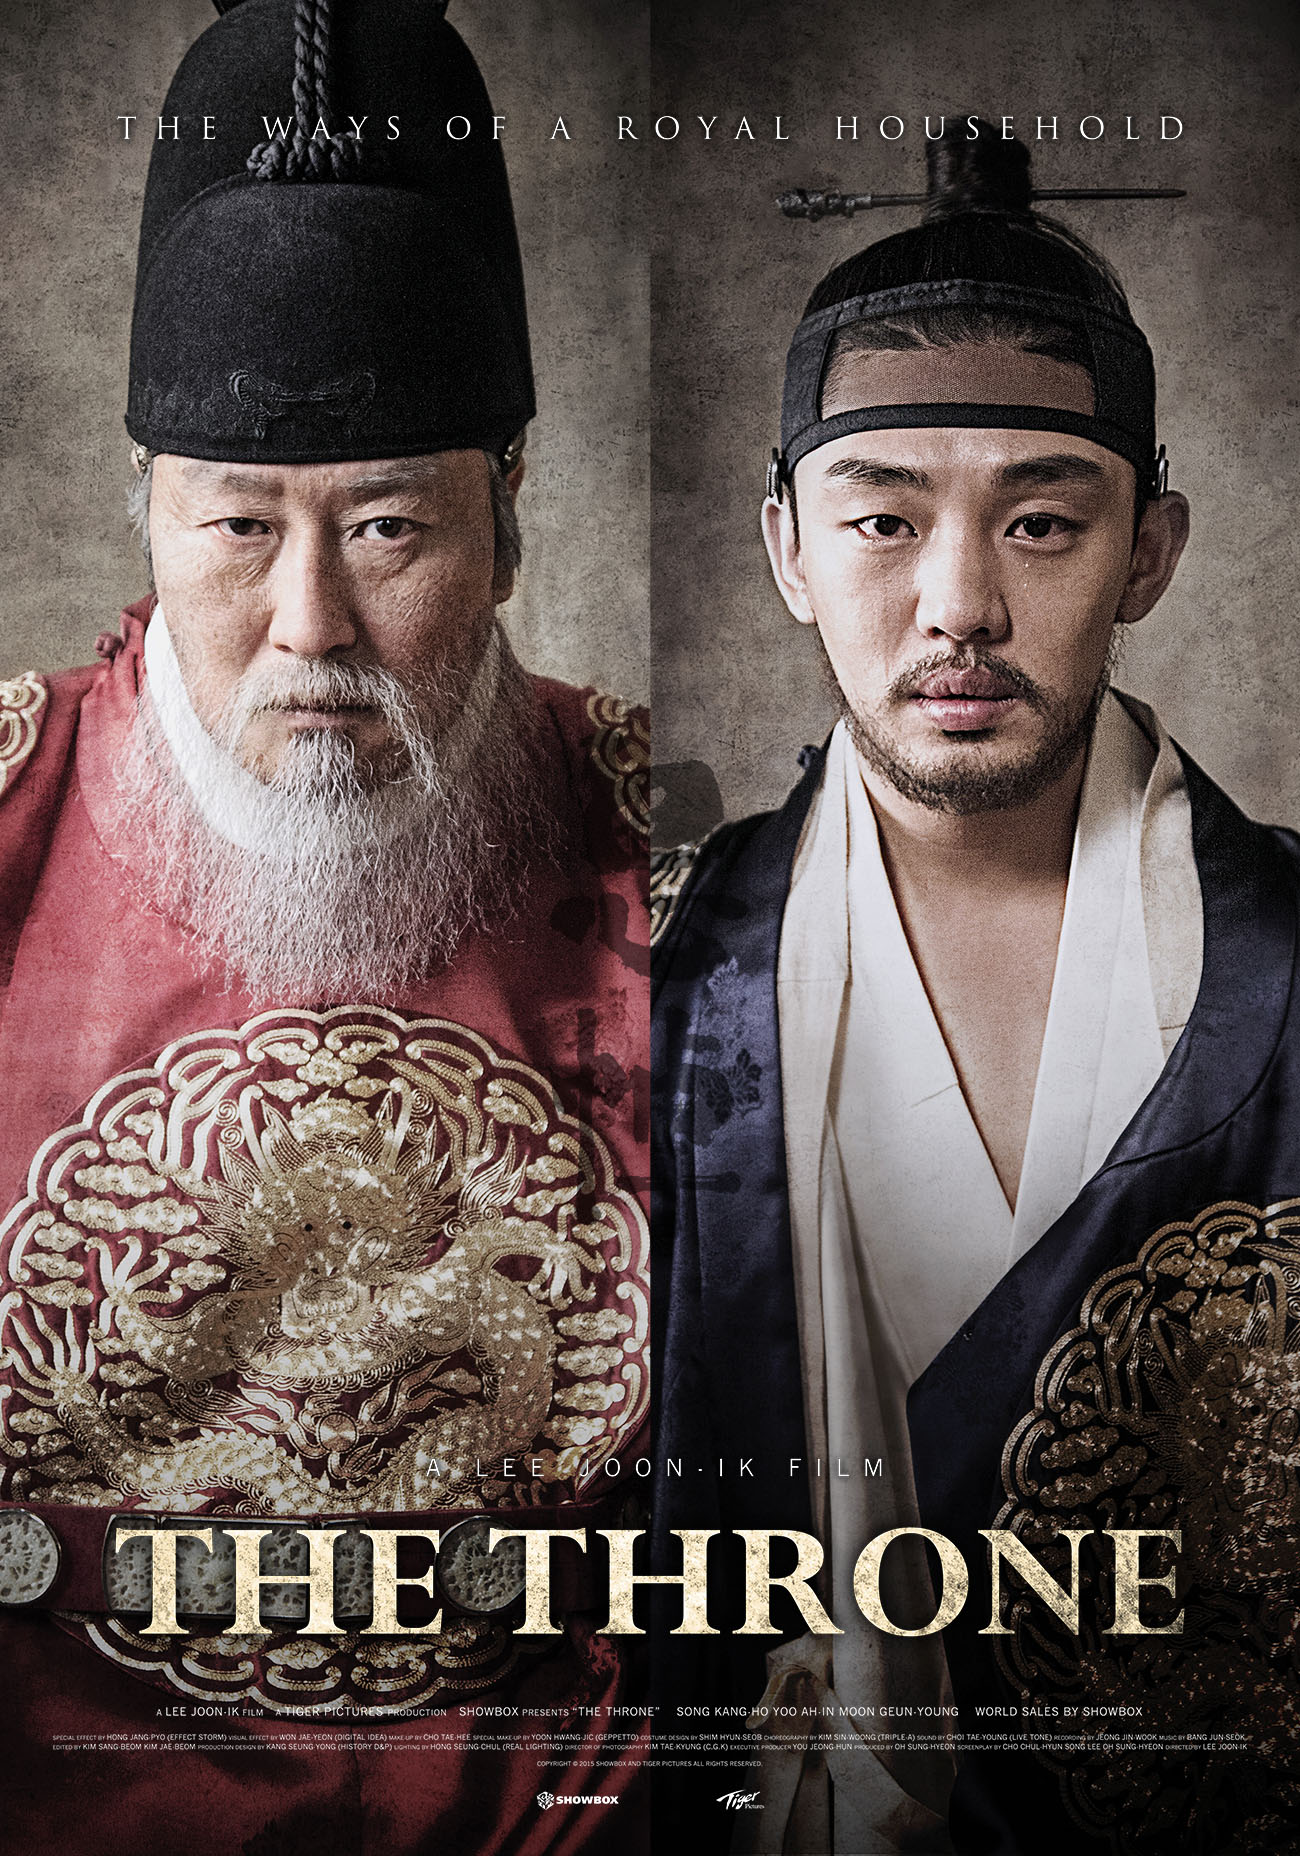 the throne  in the year of 1762 when king yeongjo of the joseon dynasty s been ruling for 35 years already crown prince sado is accused of plotting treason by